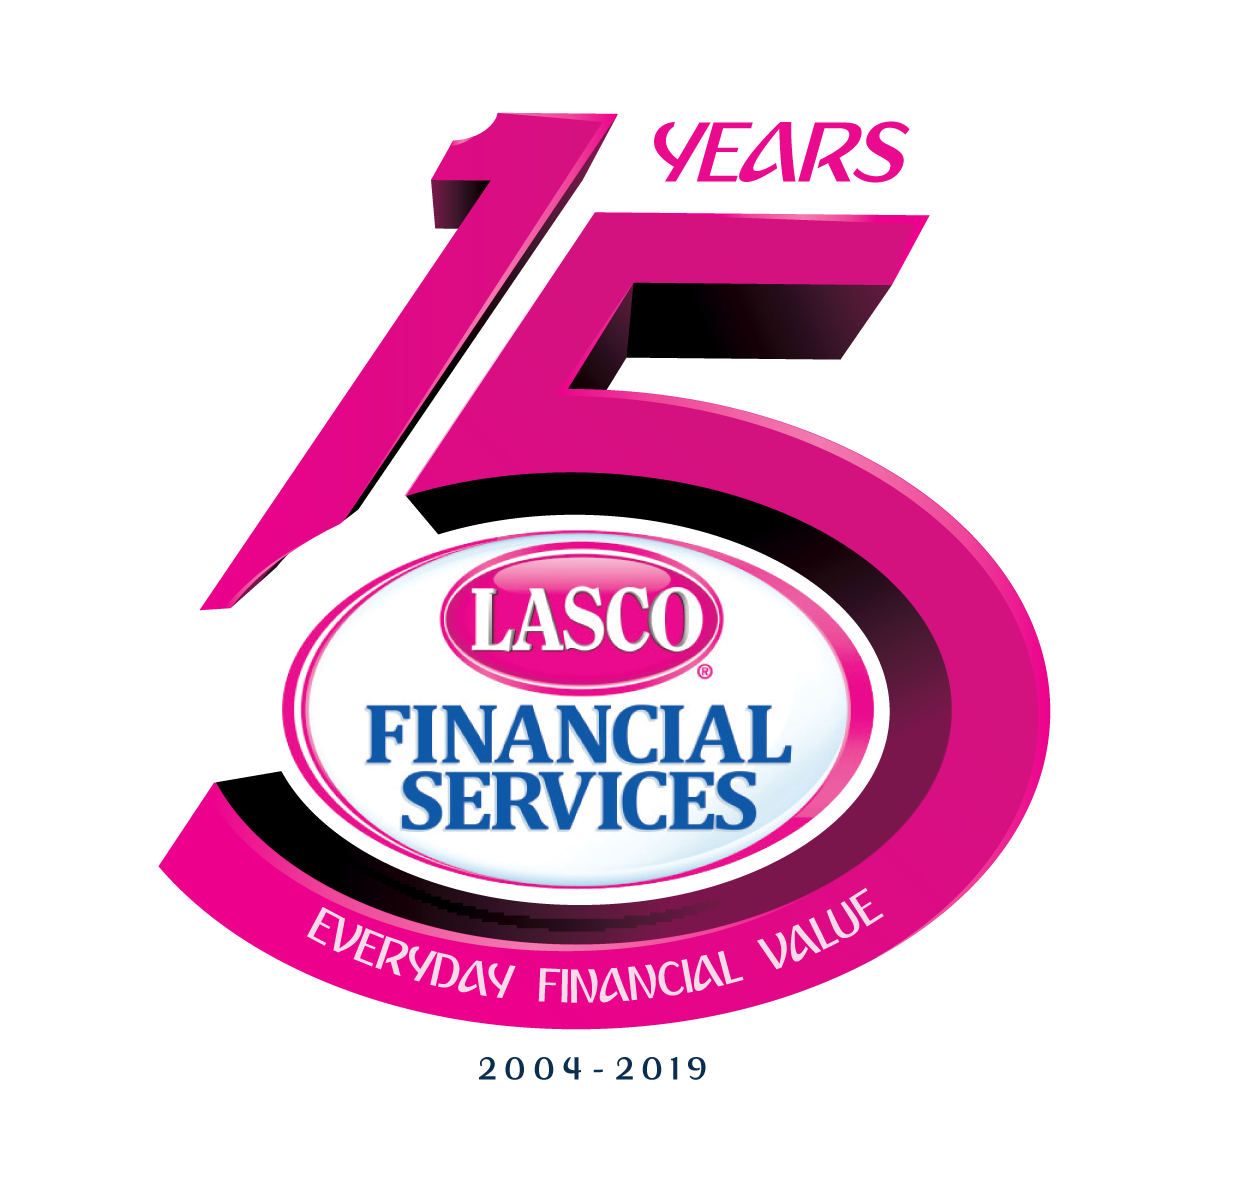 MoneyGram - LASCO Financial Services Ltd